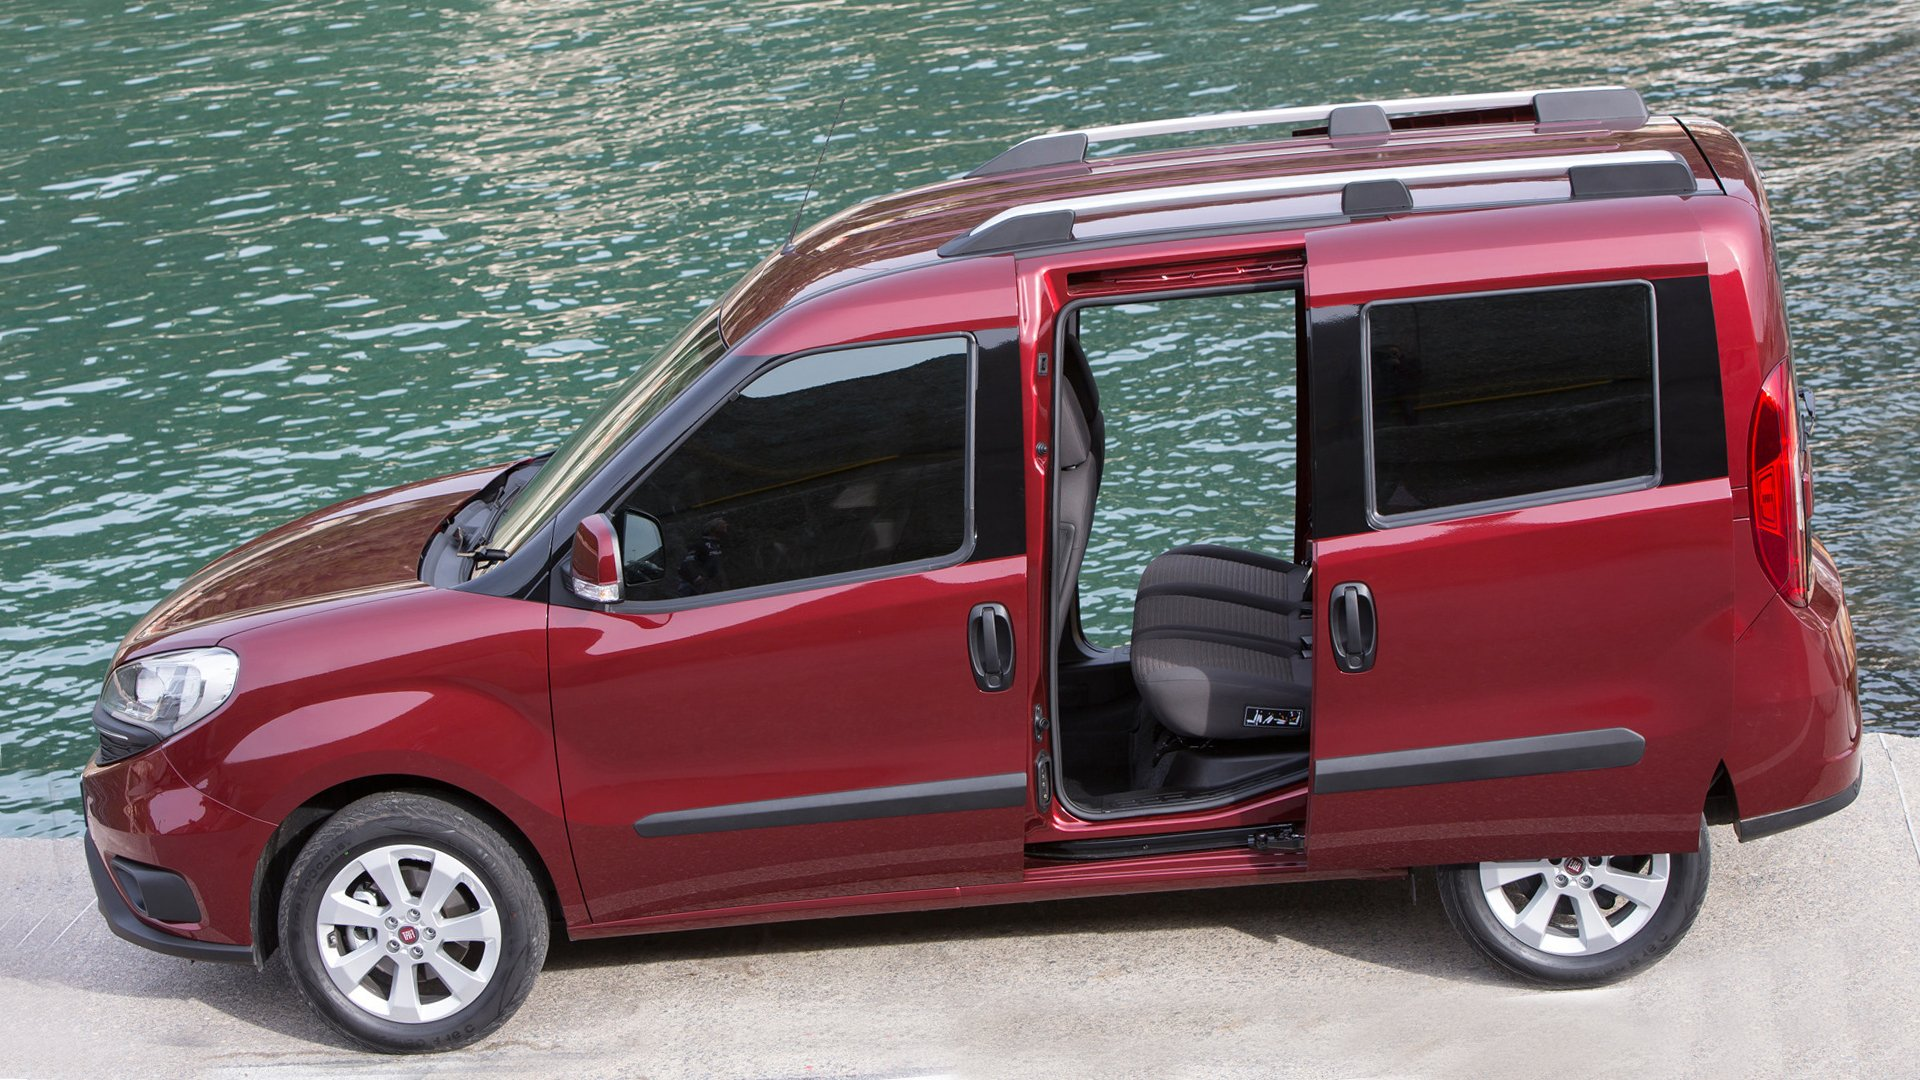 2019 Fiat Doblo USA Price List HD